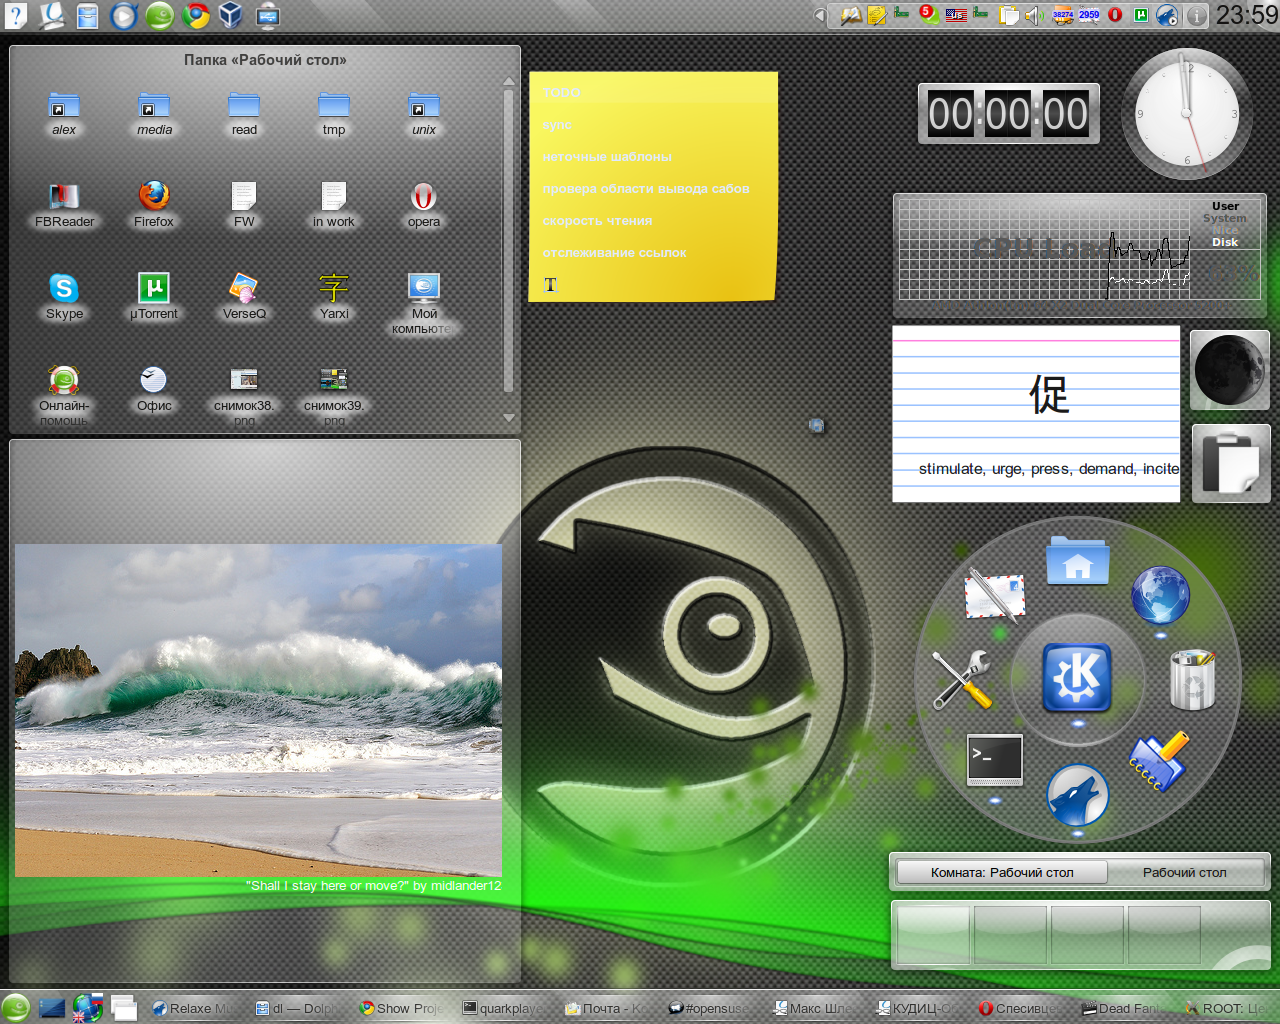 OpenSUSE1120 kde443 user picture.png